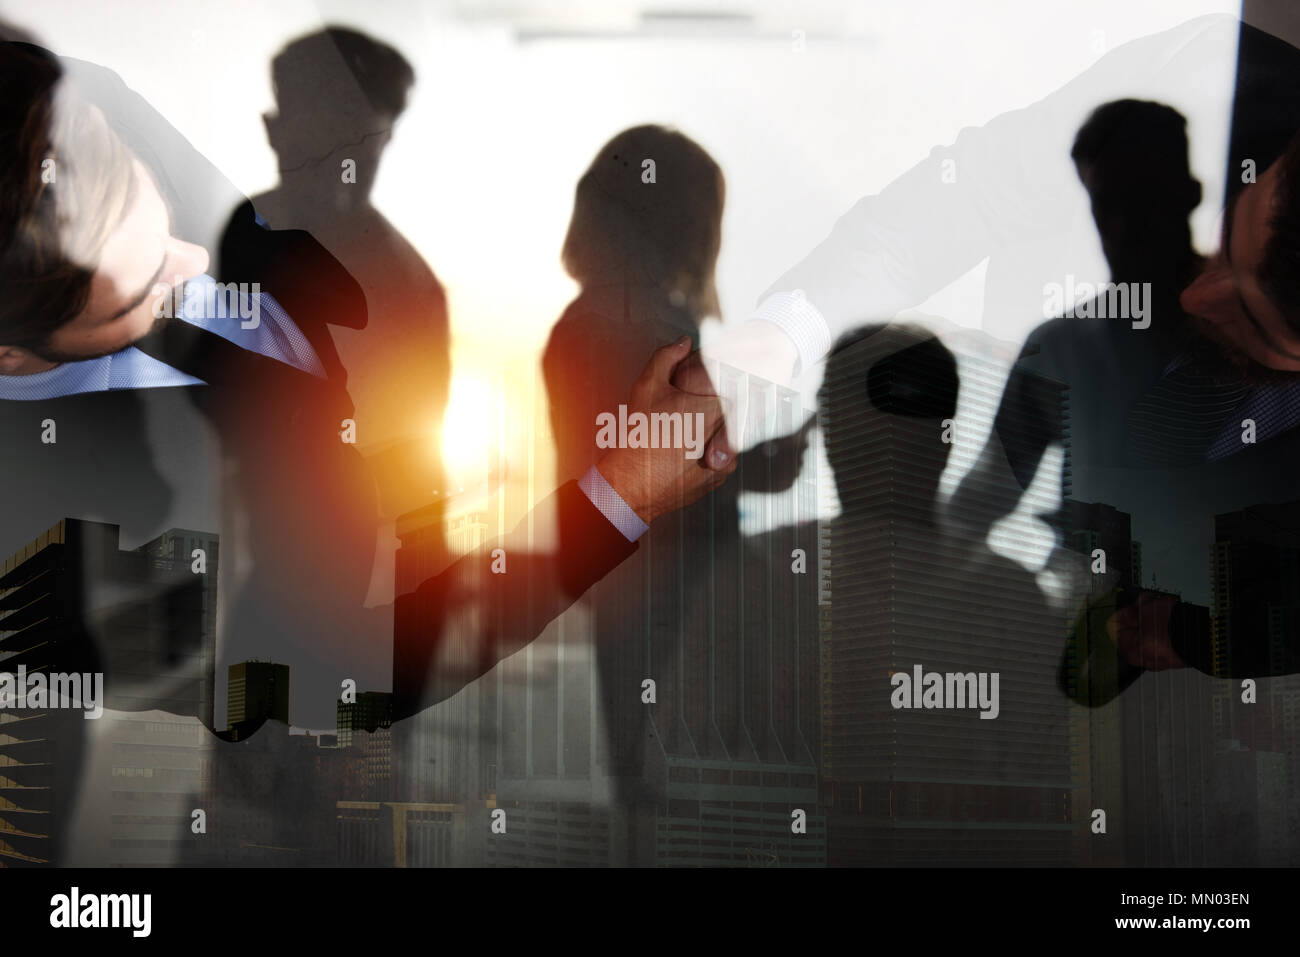 Handshaking business person in office. concept of teamwork and partnership. double exposure - Stock Image